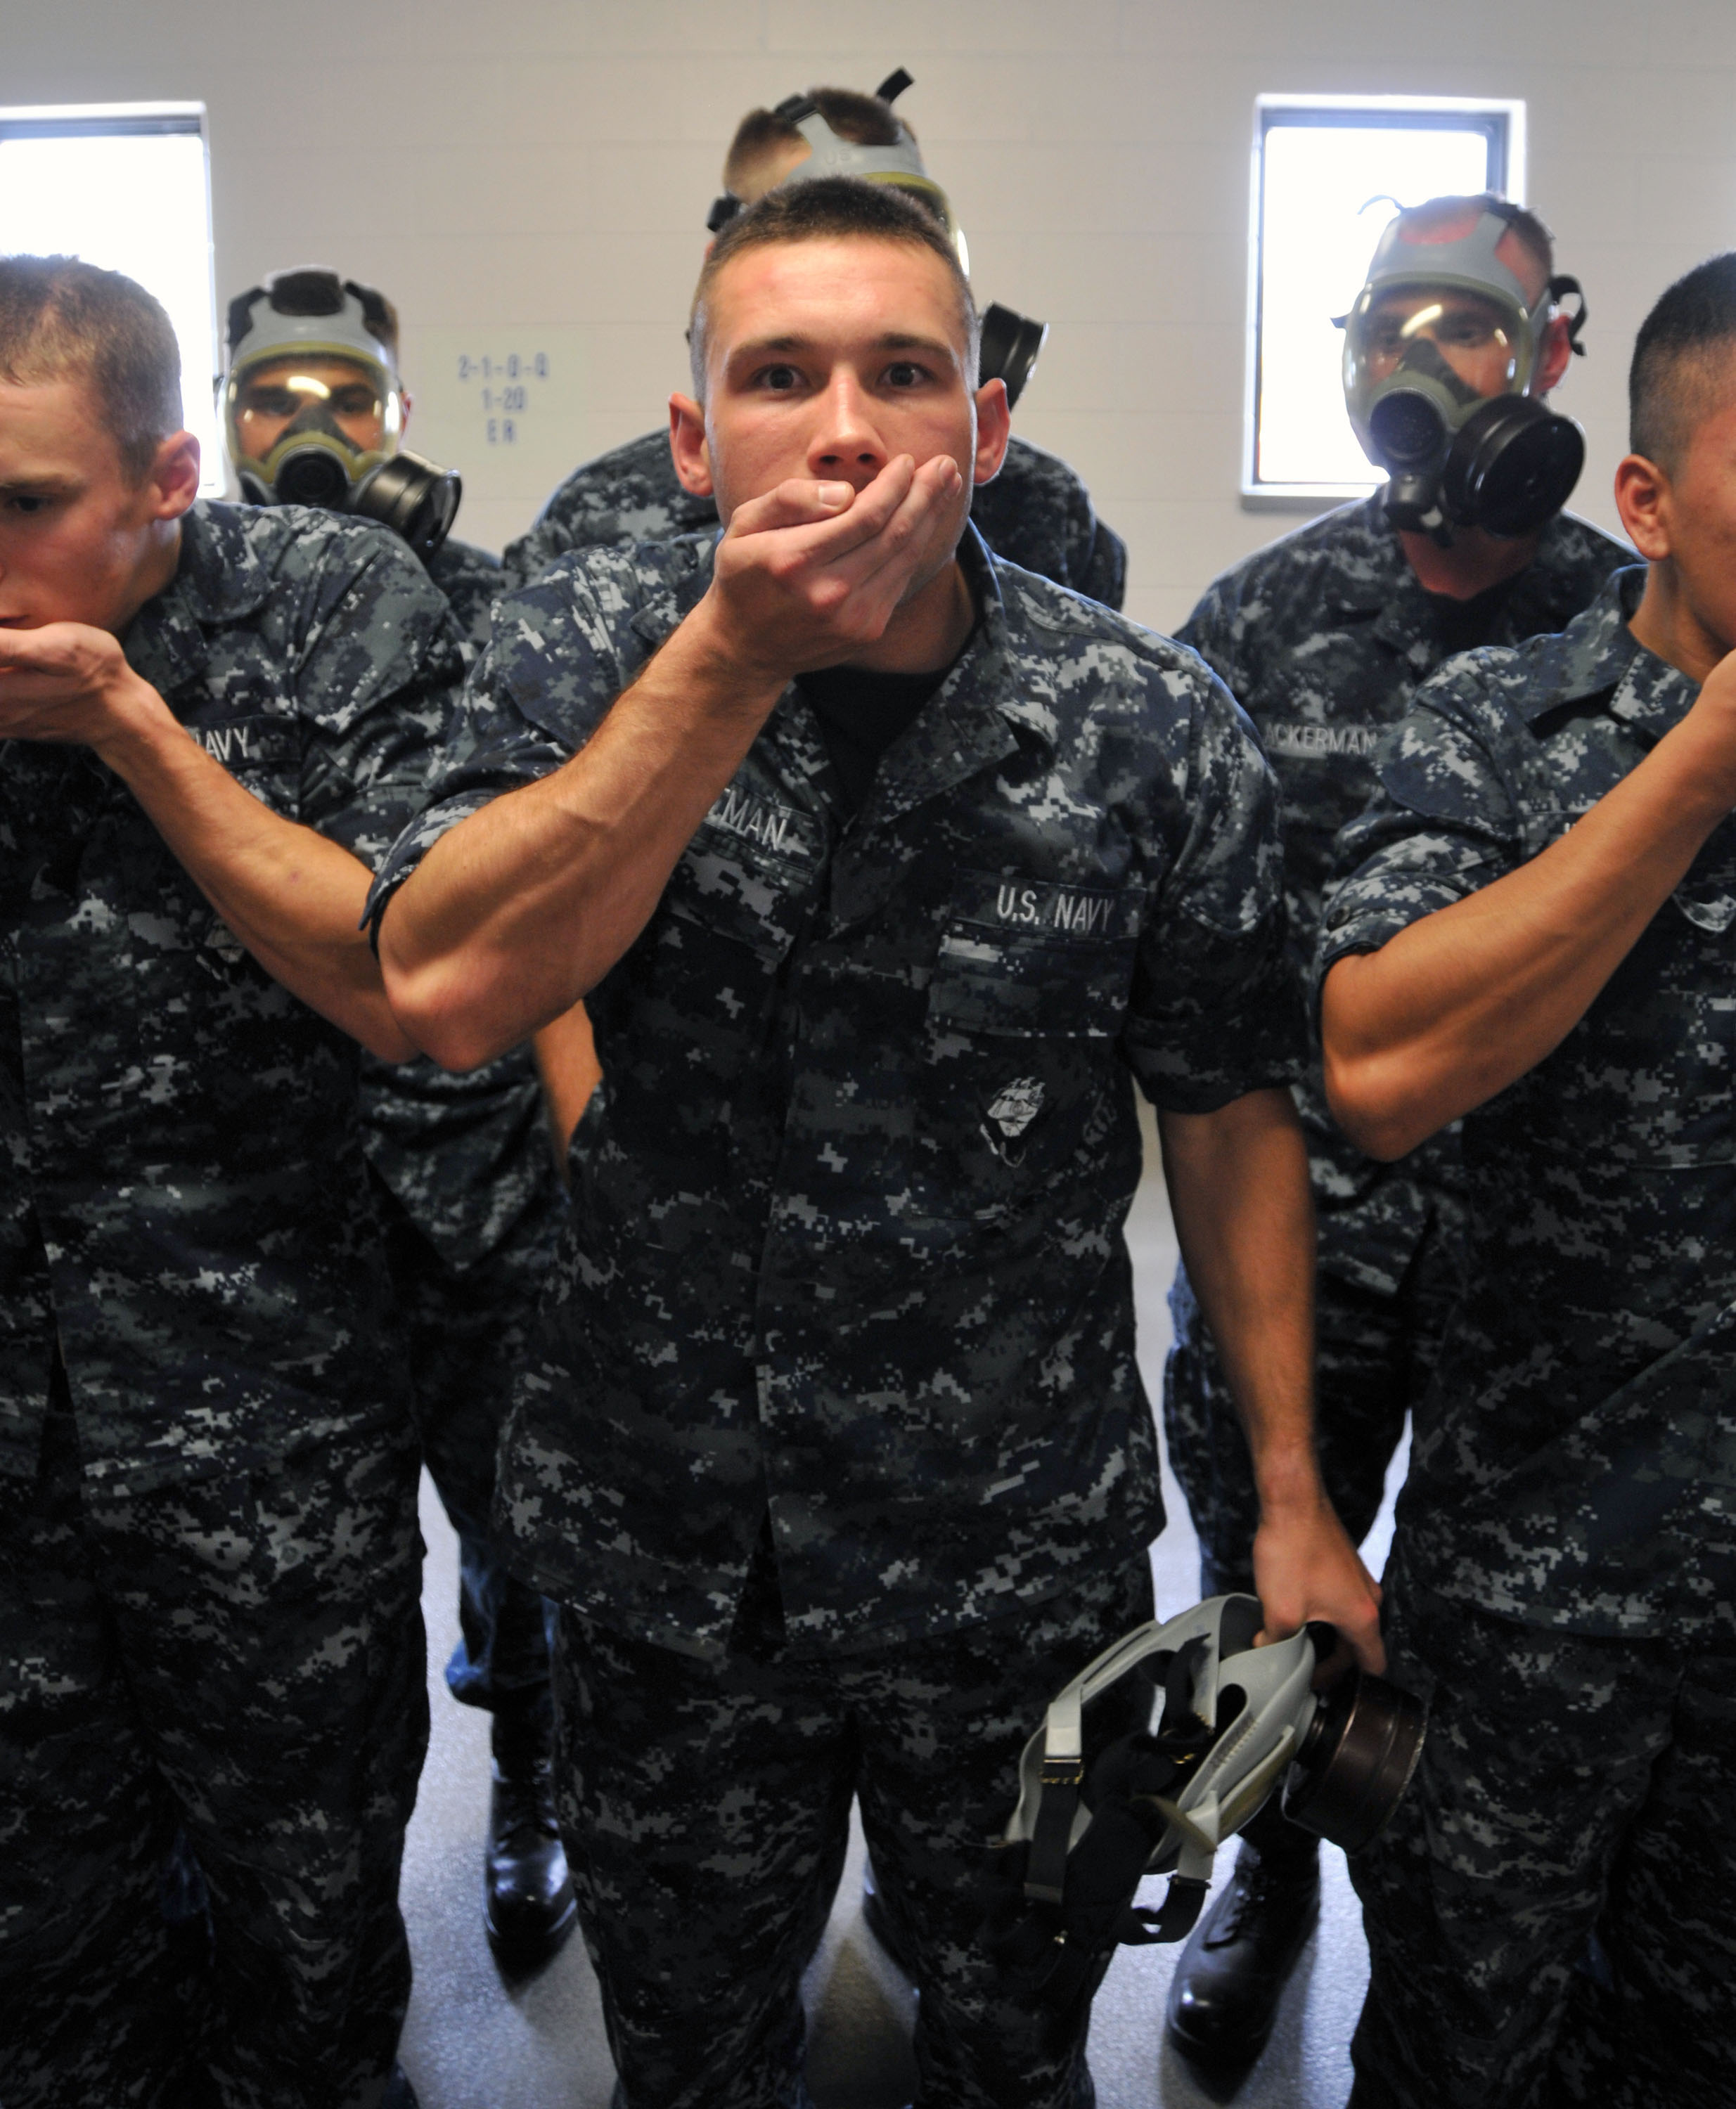 FileUS Navy Seaman Recruit Garrett Dietman Prepares For